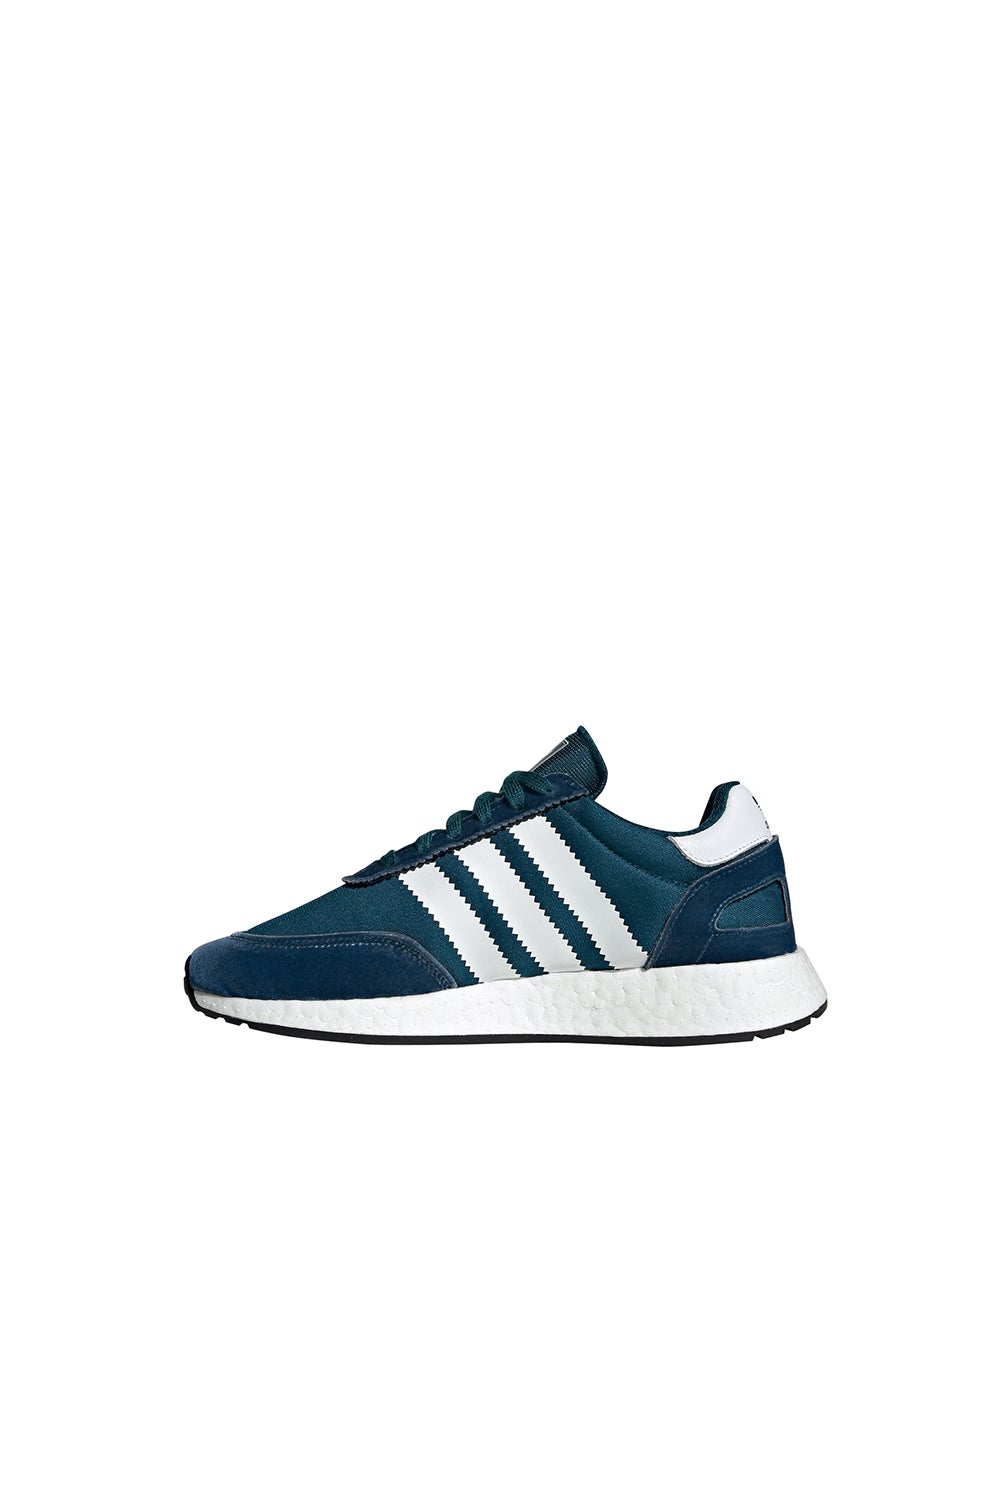 adidas I-5923 Tech Mineral/FTWR White/Core Black